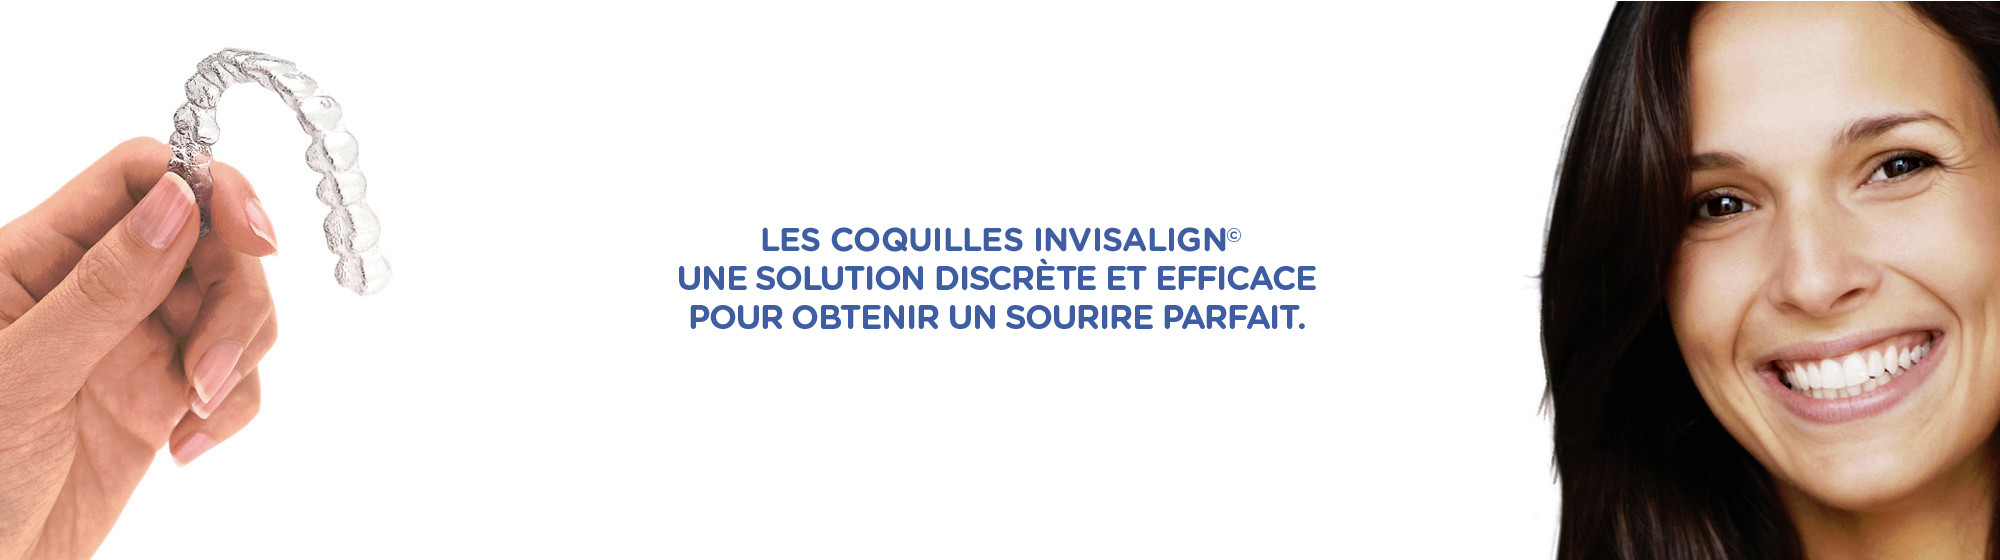 Coquilles Invisalign Orthodontie Invisible Montreal